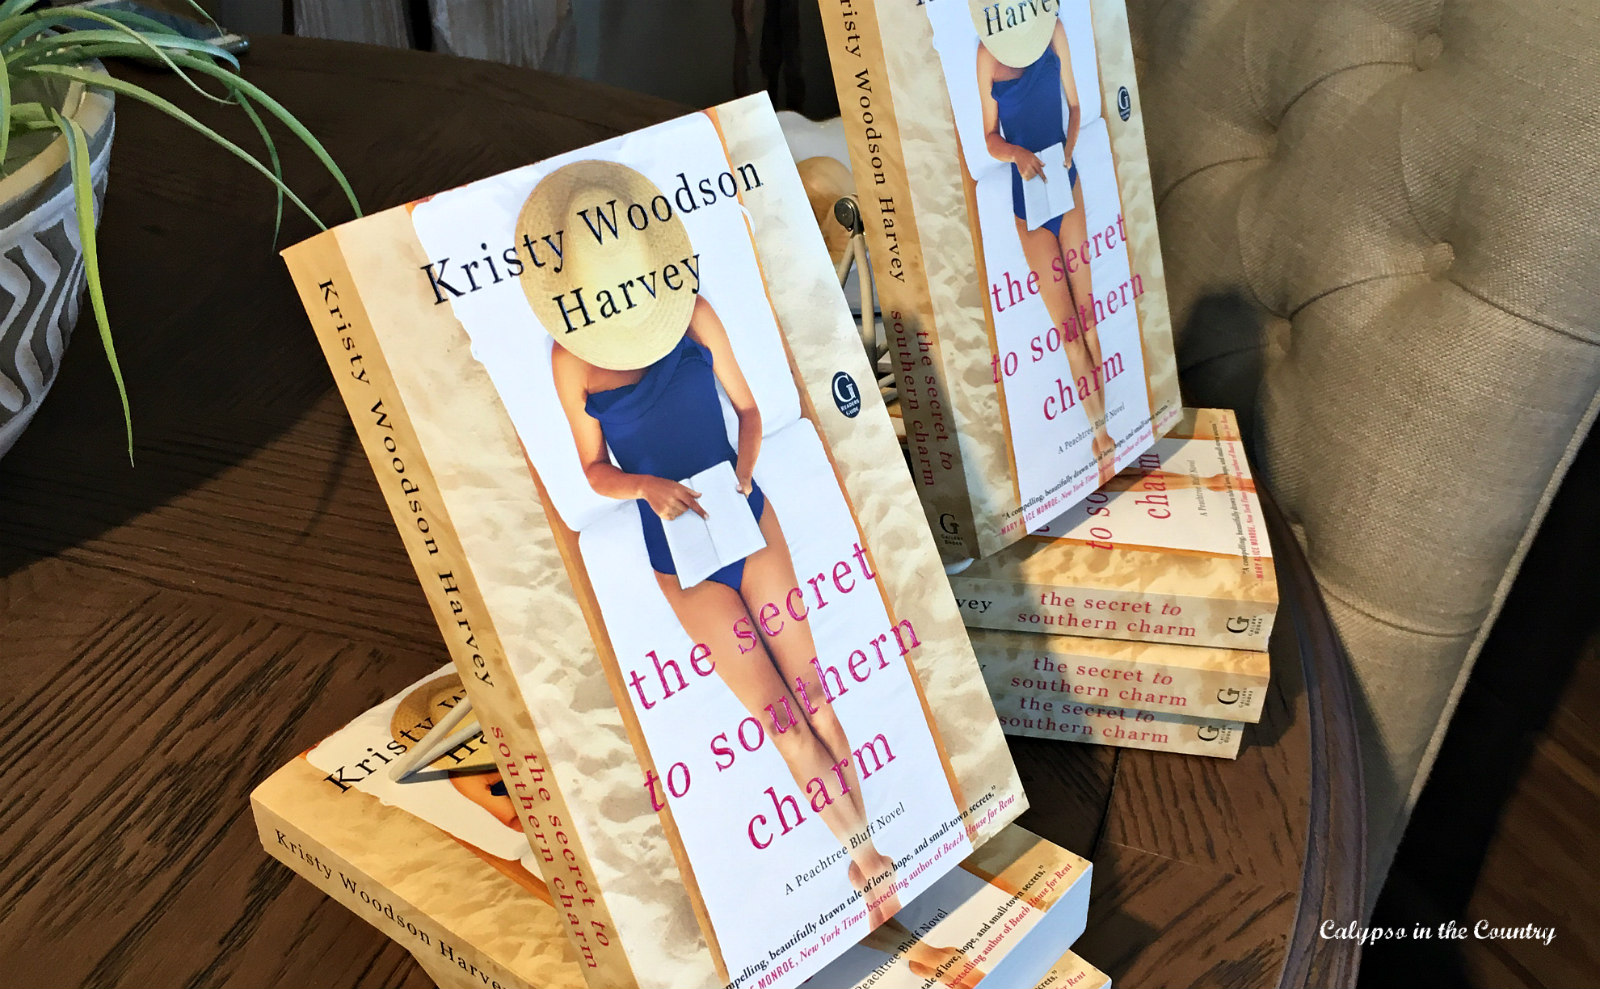 Kristy Woodson Harvey book tour